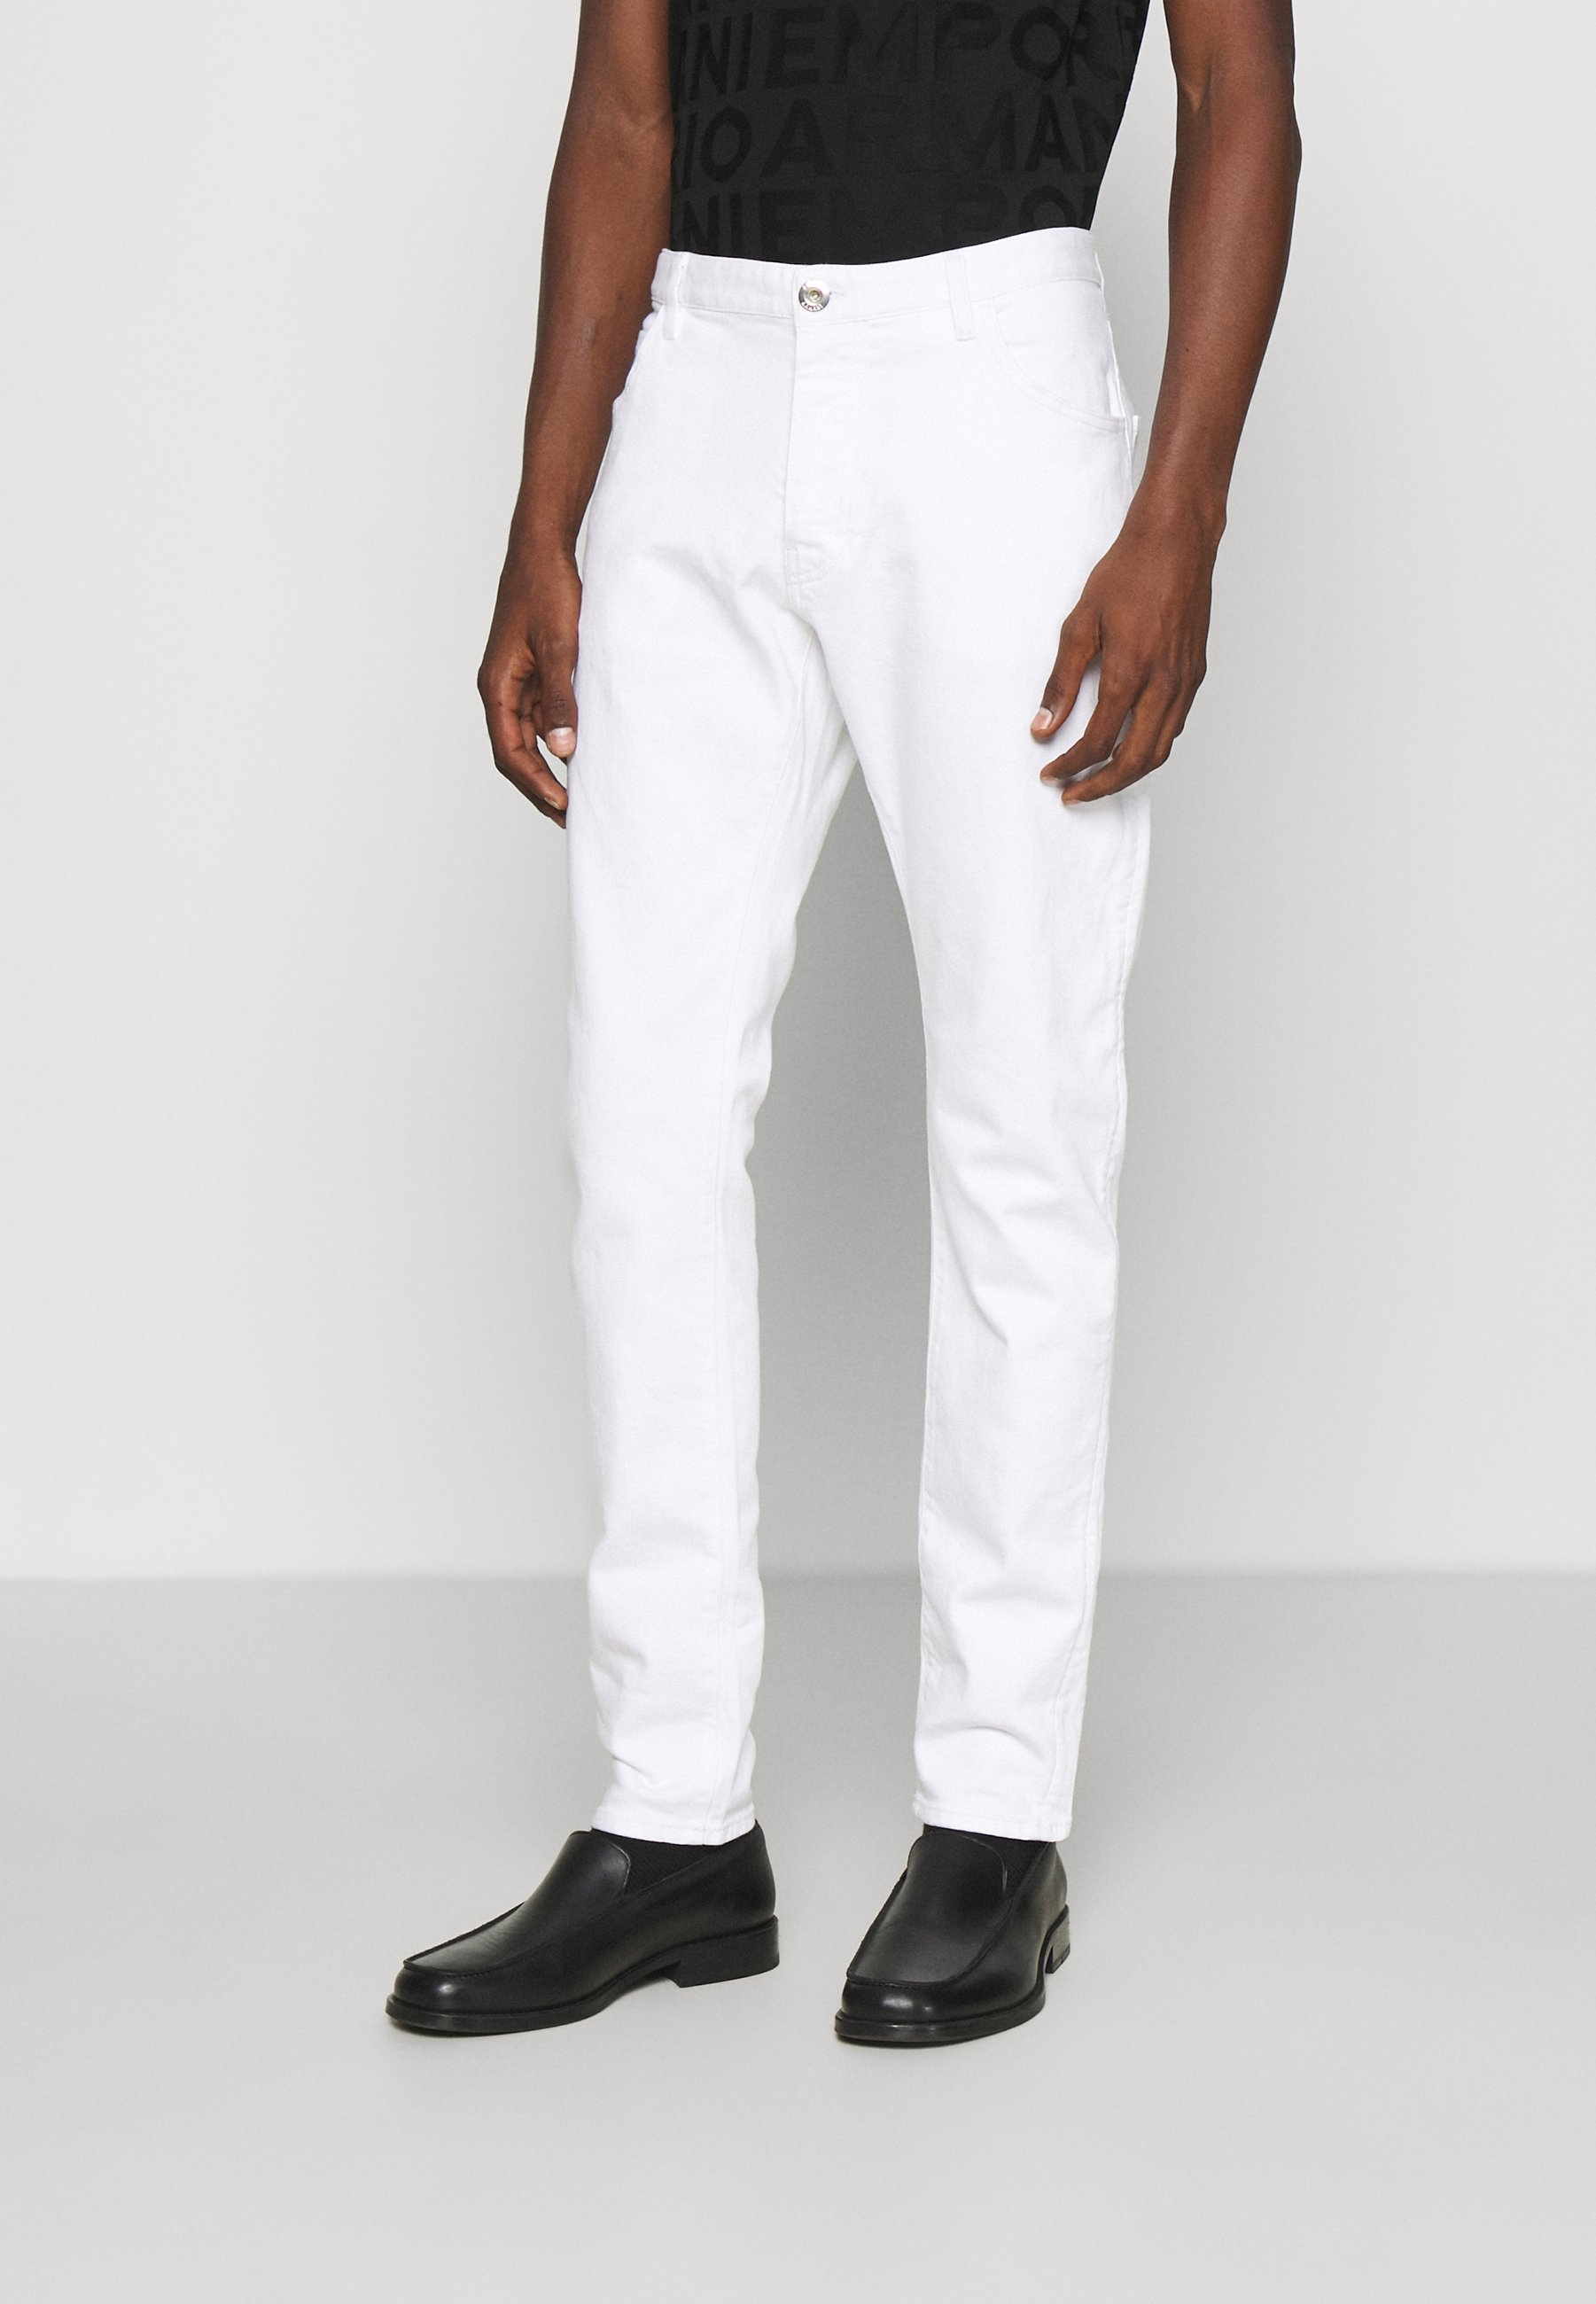 Uomo POCKETS PANT - Jeans a sigaretta